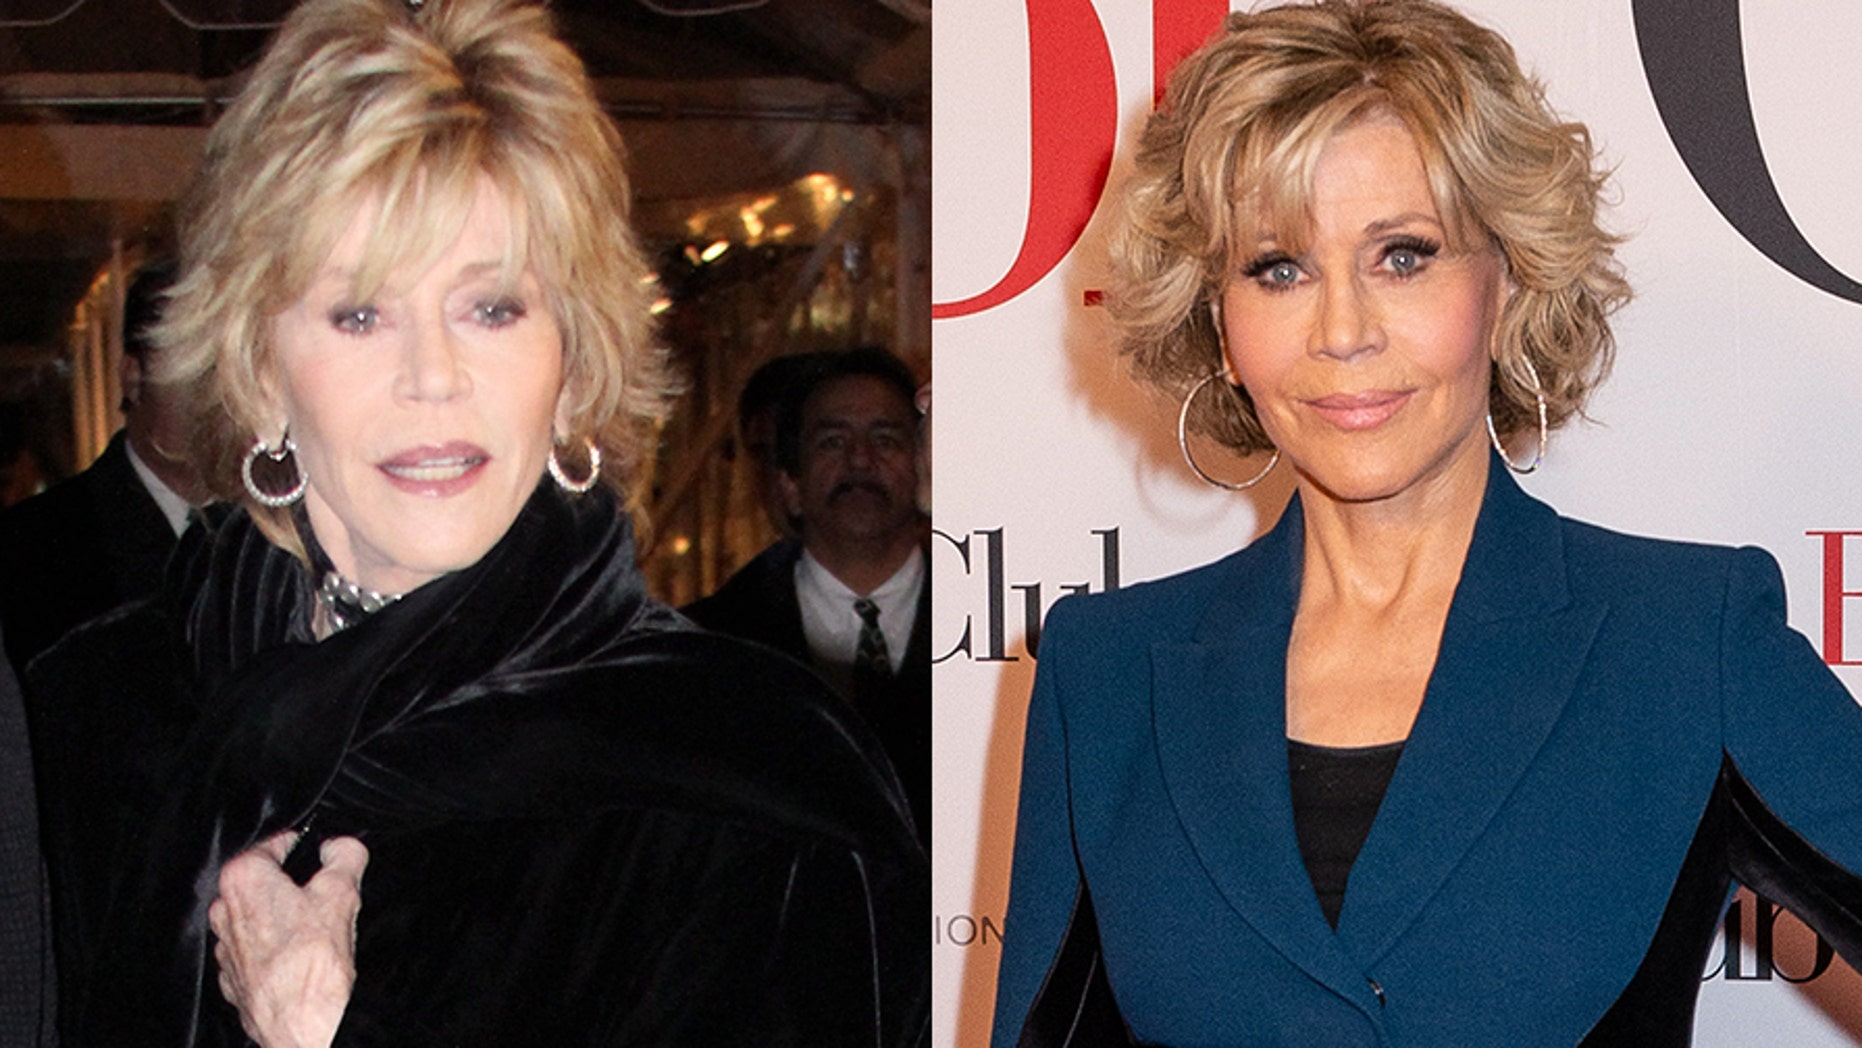 Jane Fonda said she was tired of people telling her she looked tired when she wasn't.